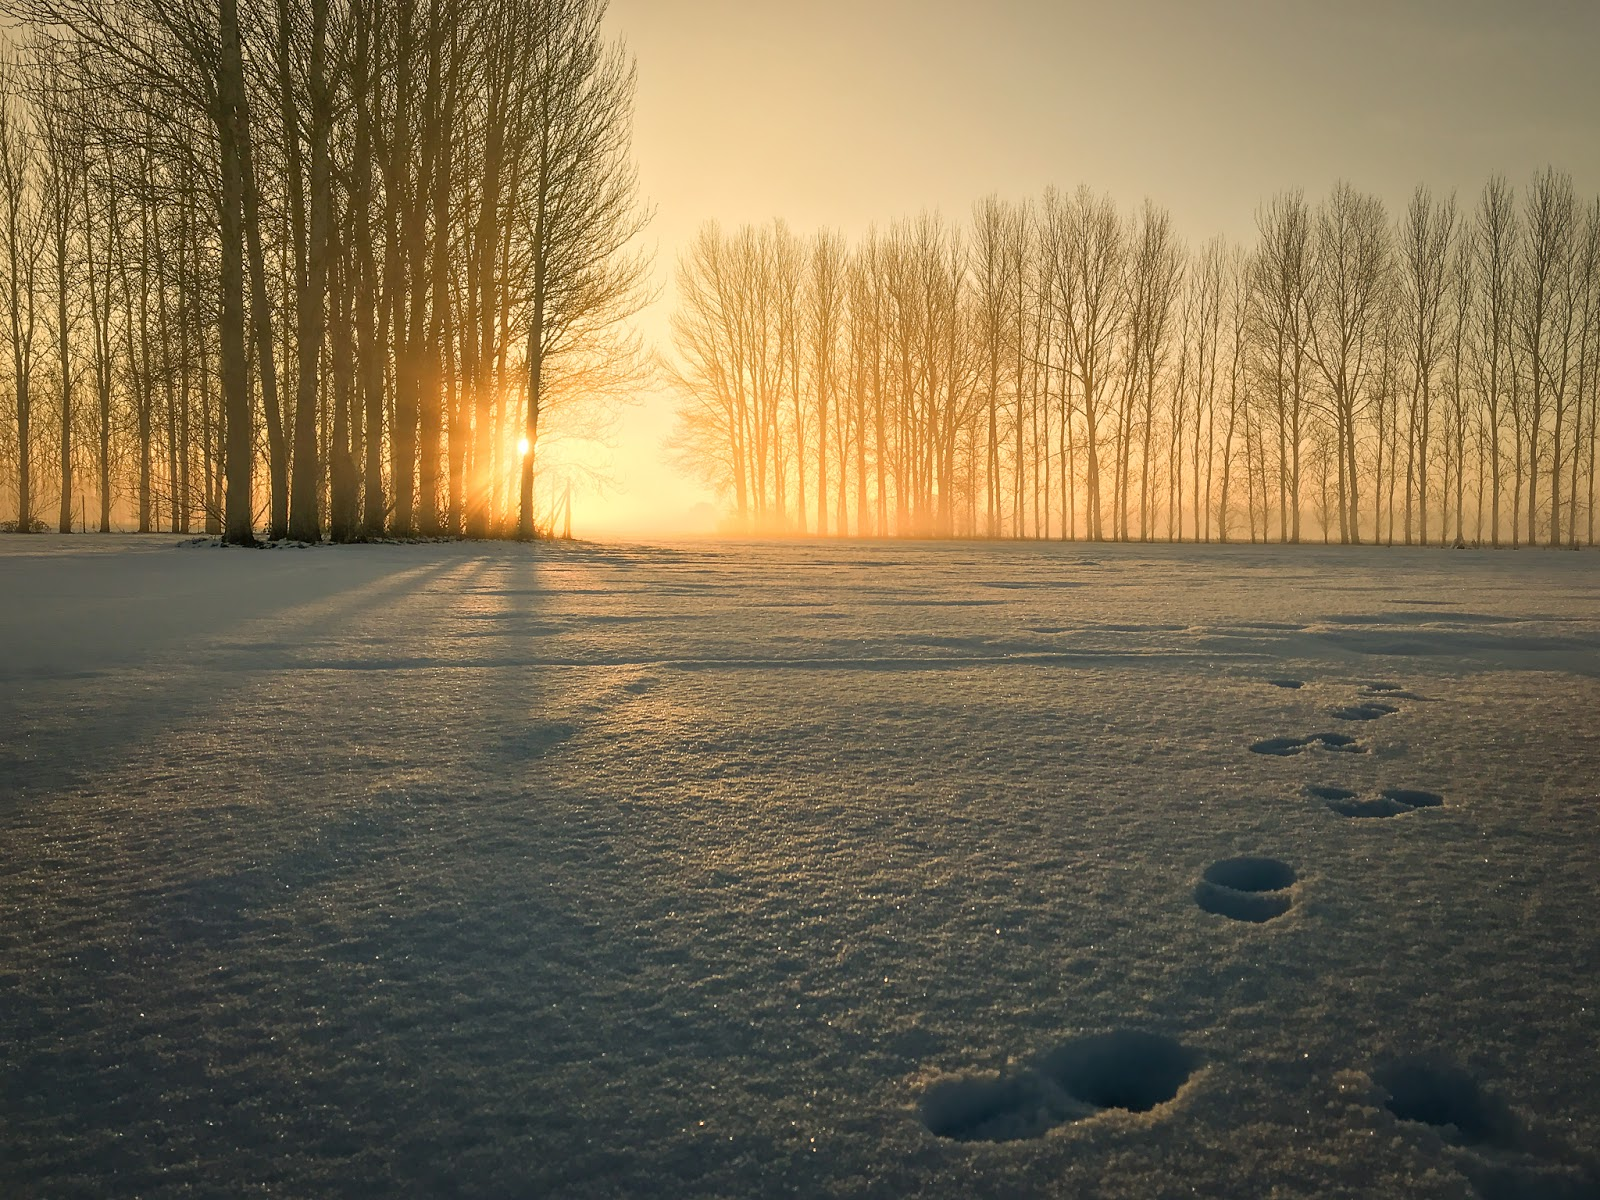 iPhone photography- landscape with footprints